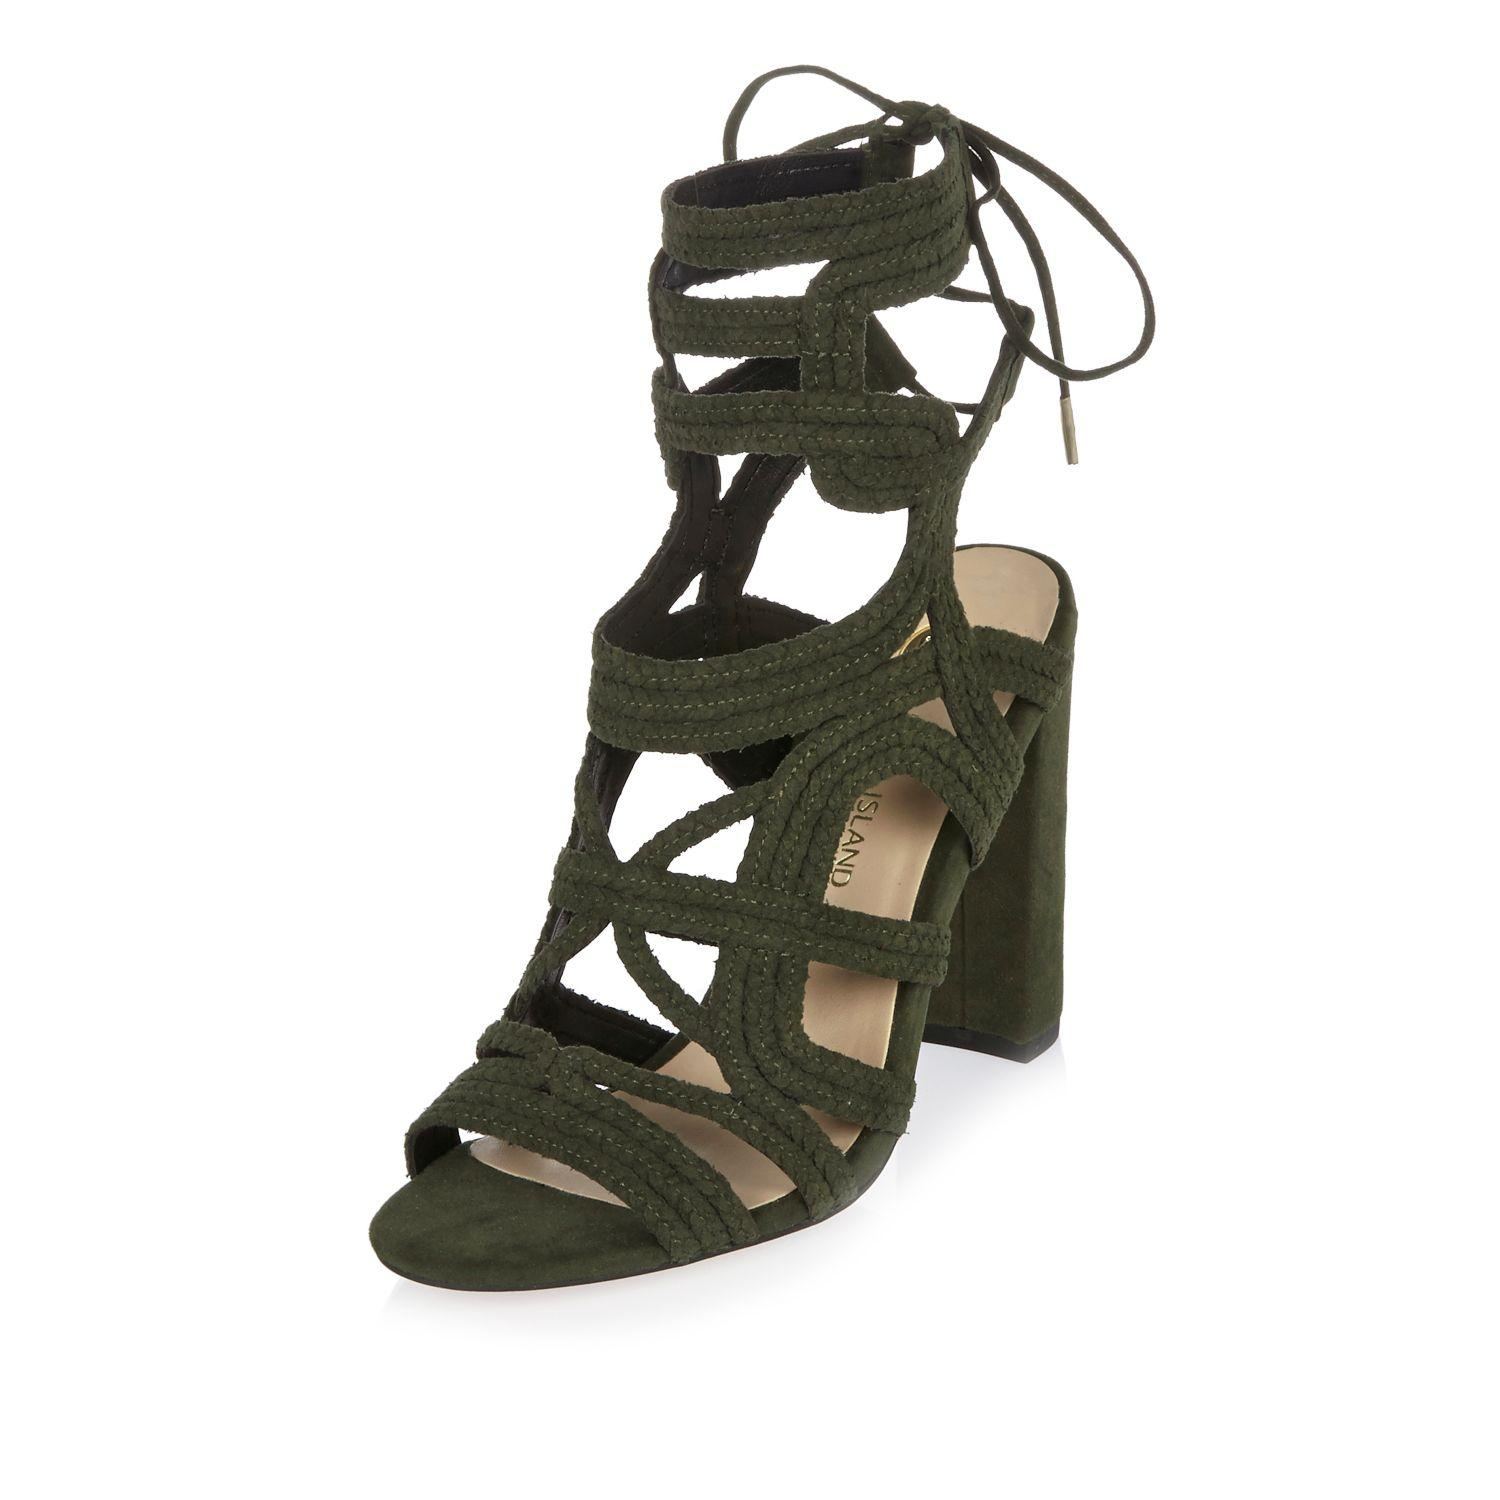 a1ed6977ea0 Lyst - River Island Khaki Braided Cage Heel Sandals in Natural